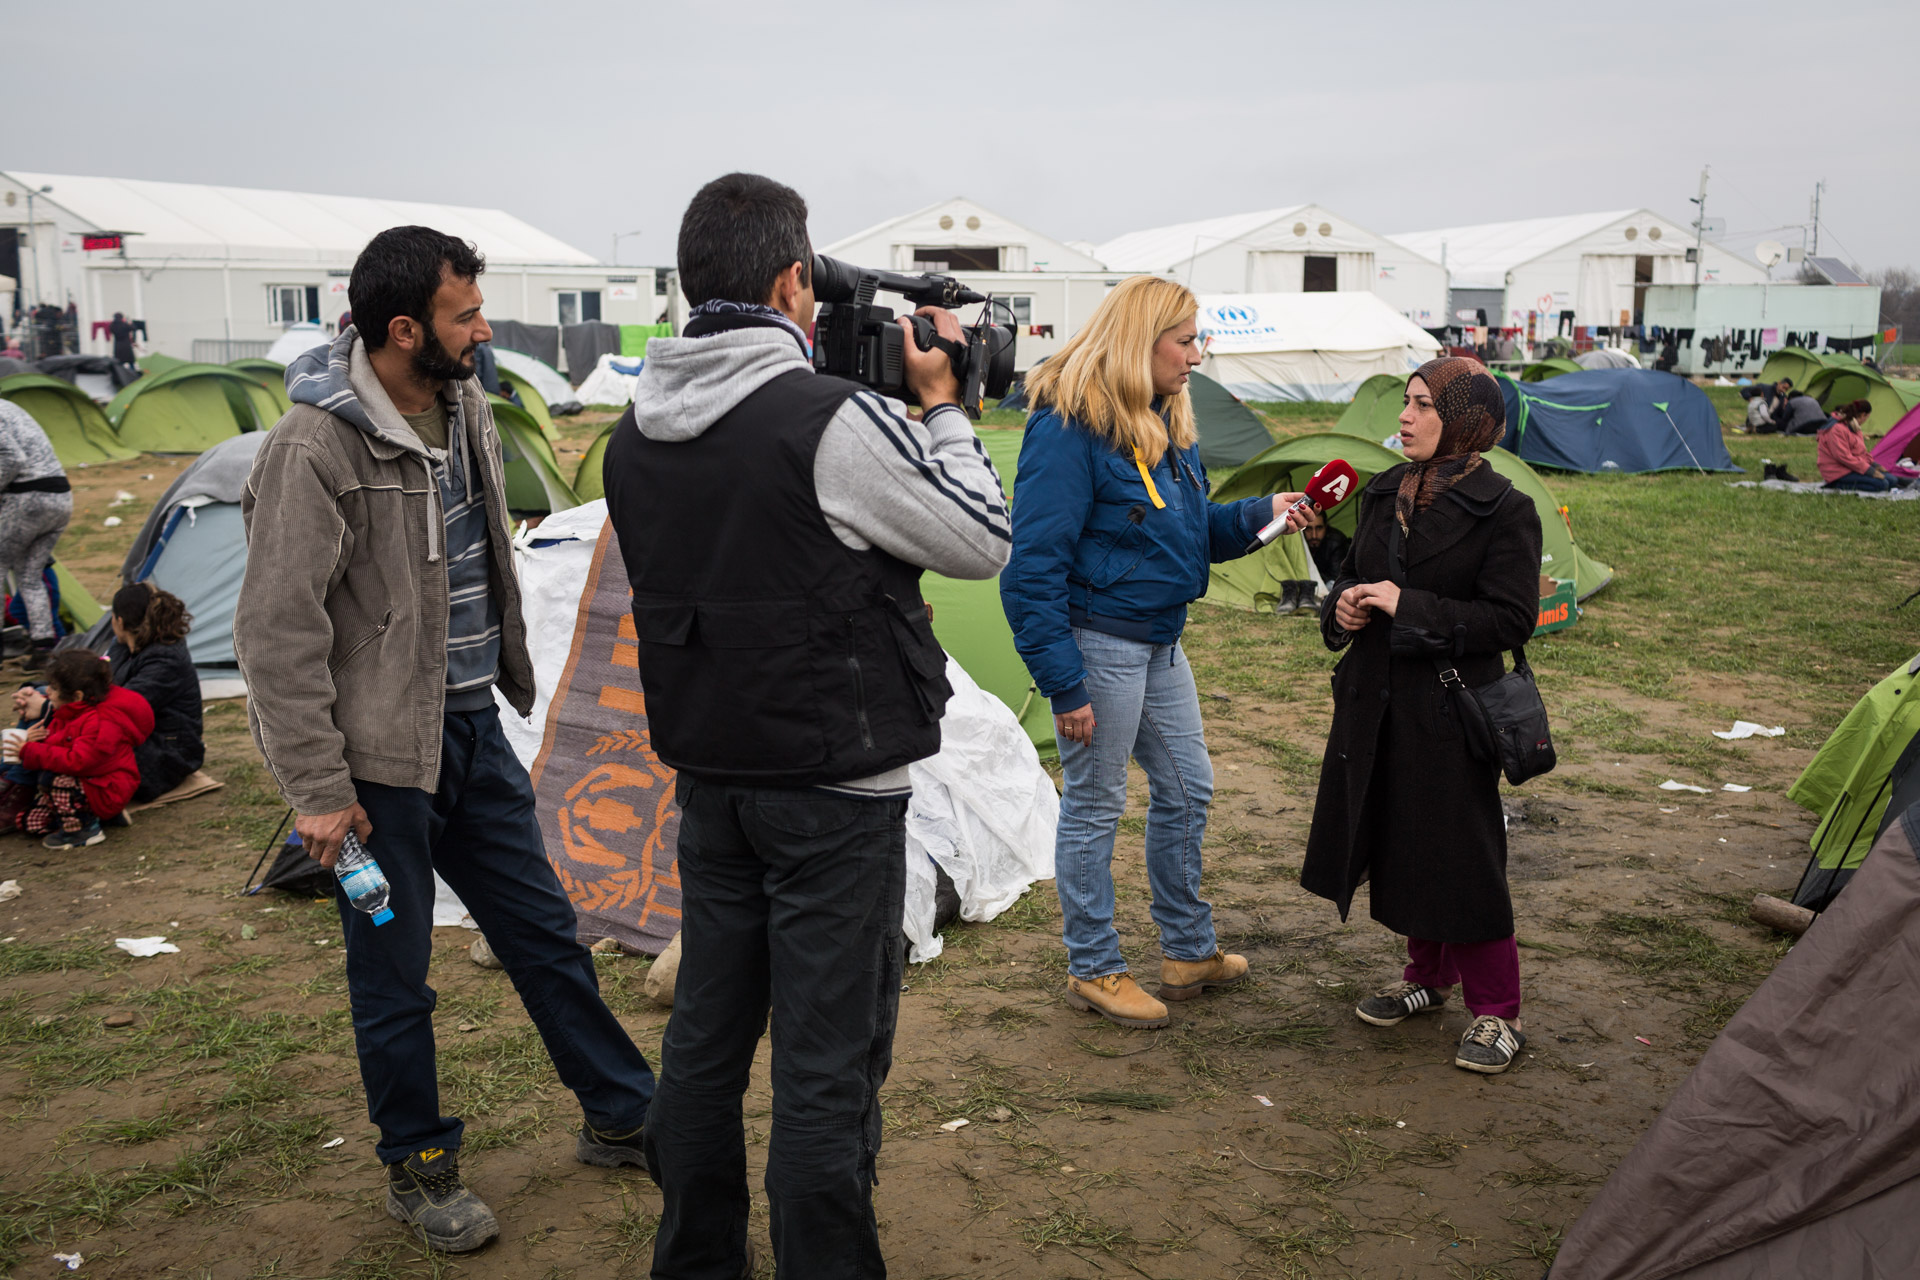 Because Khulud studied English literature and knows some English too, she is sometimes approached by media in Idomeni camp. Basem stands by on the left. He adores his wife very much for being a sophisticated reader and admirer of literature.